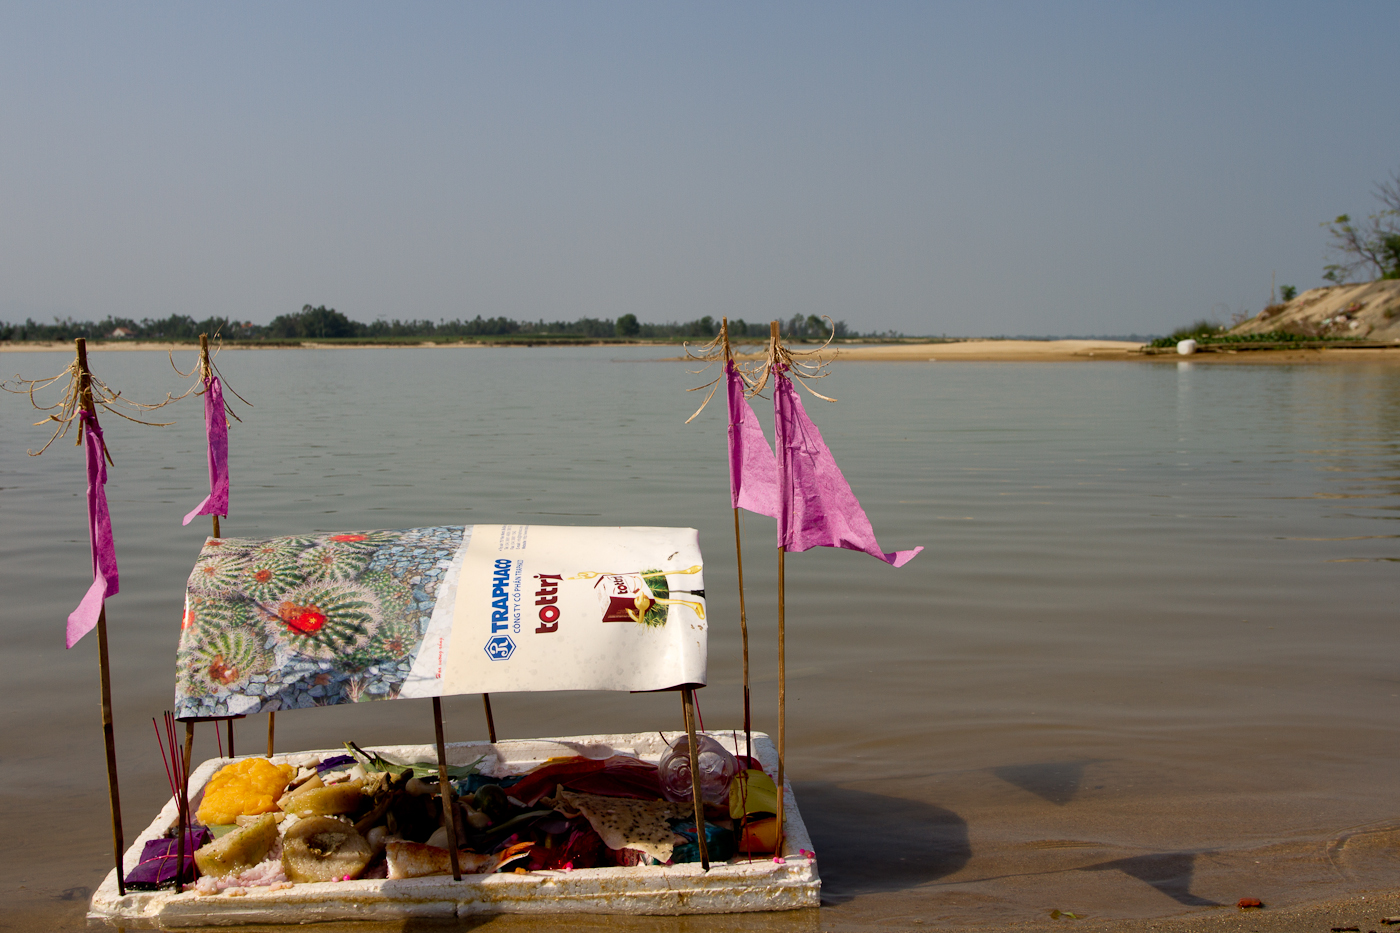 This little boat carrying offerings washed up at the edge of the river's main channel